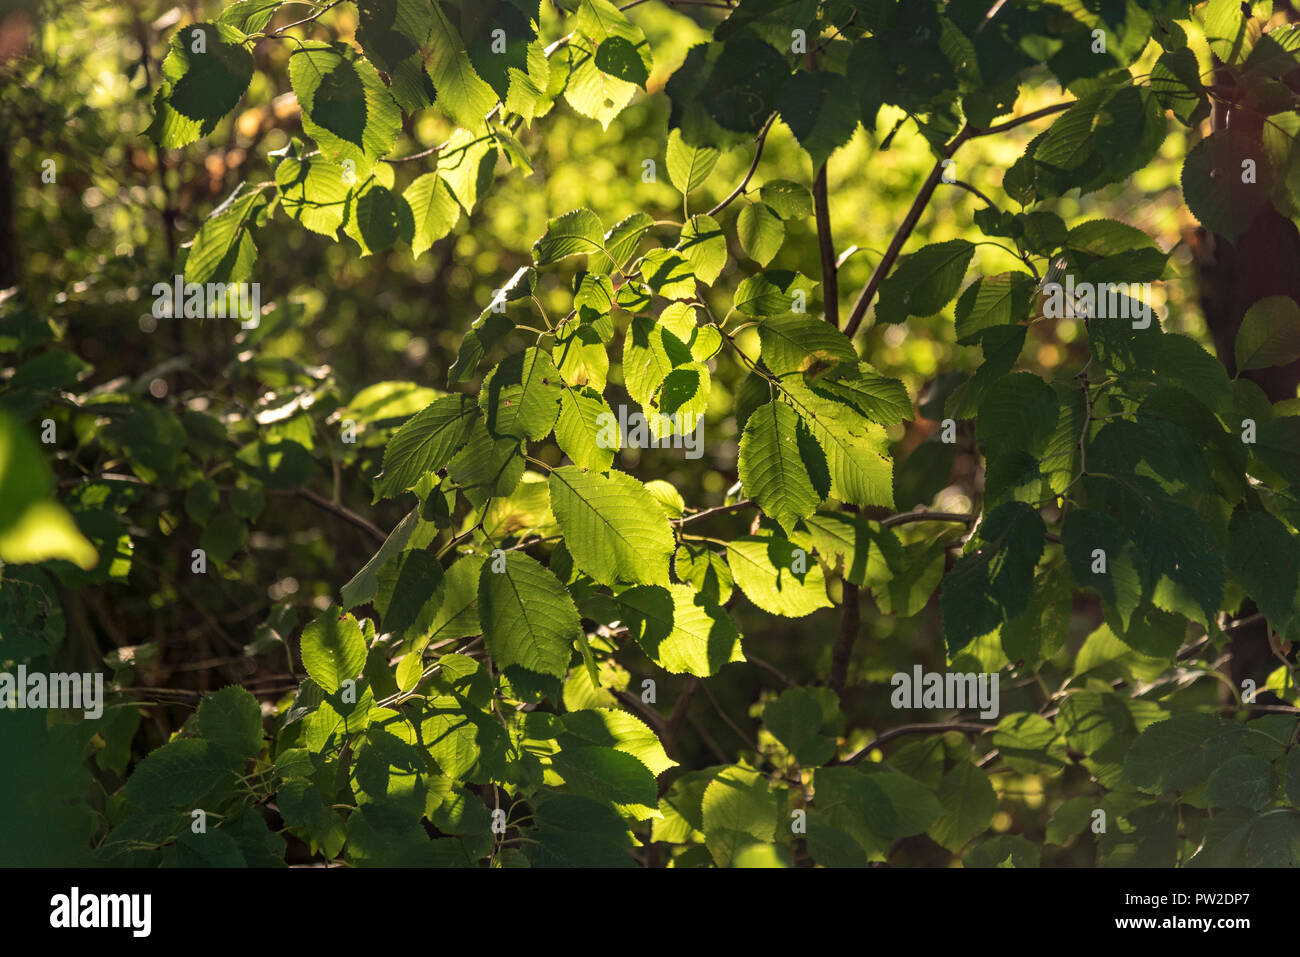 Leaves in dappled backlight autumn colours - Stock Image